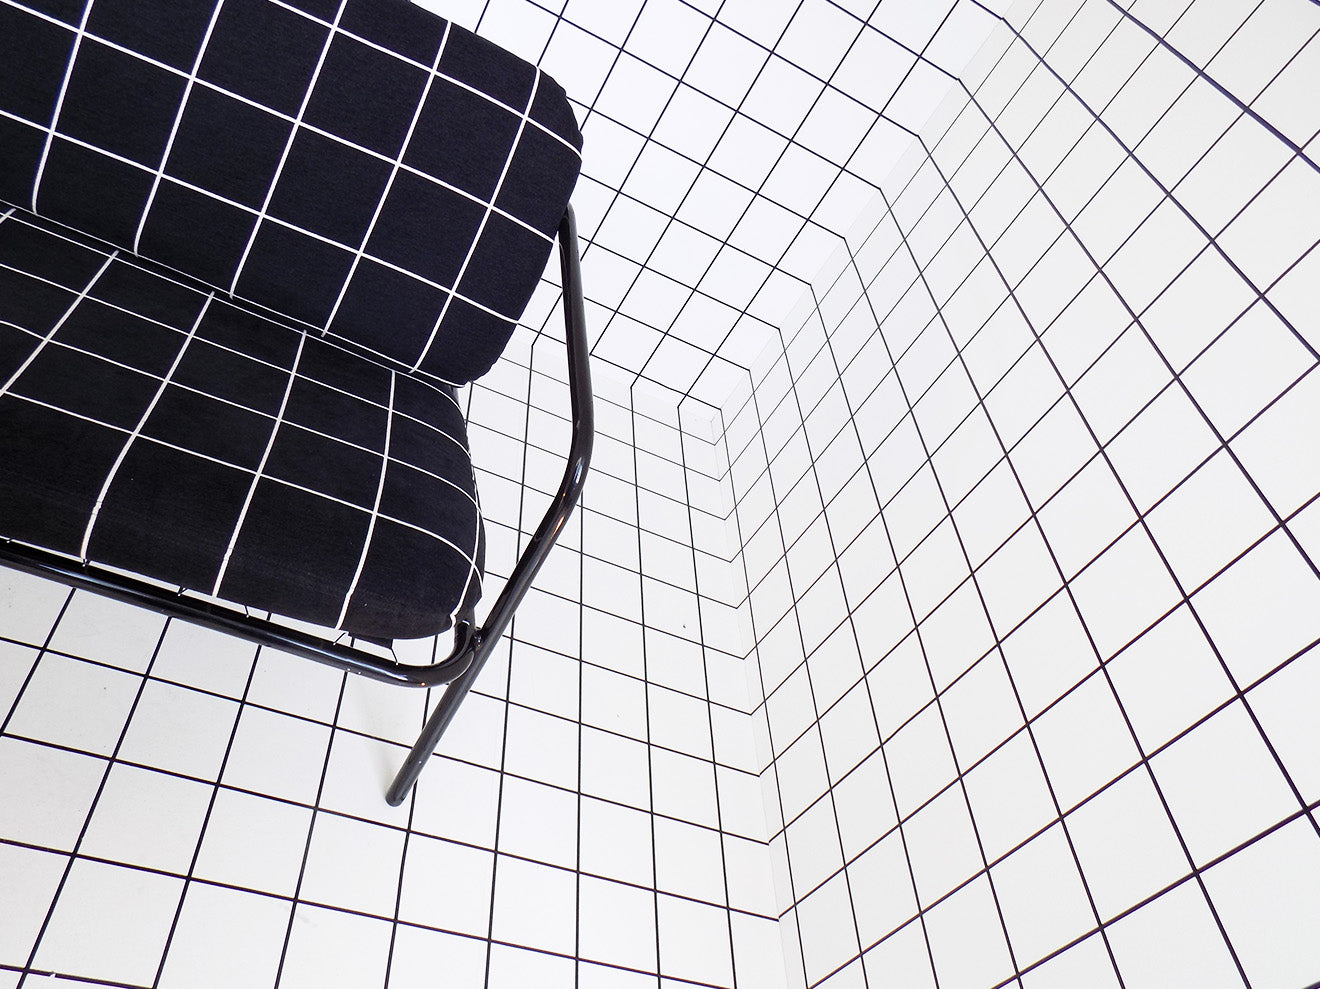 monochrome grid furniture display from Kirk By Design